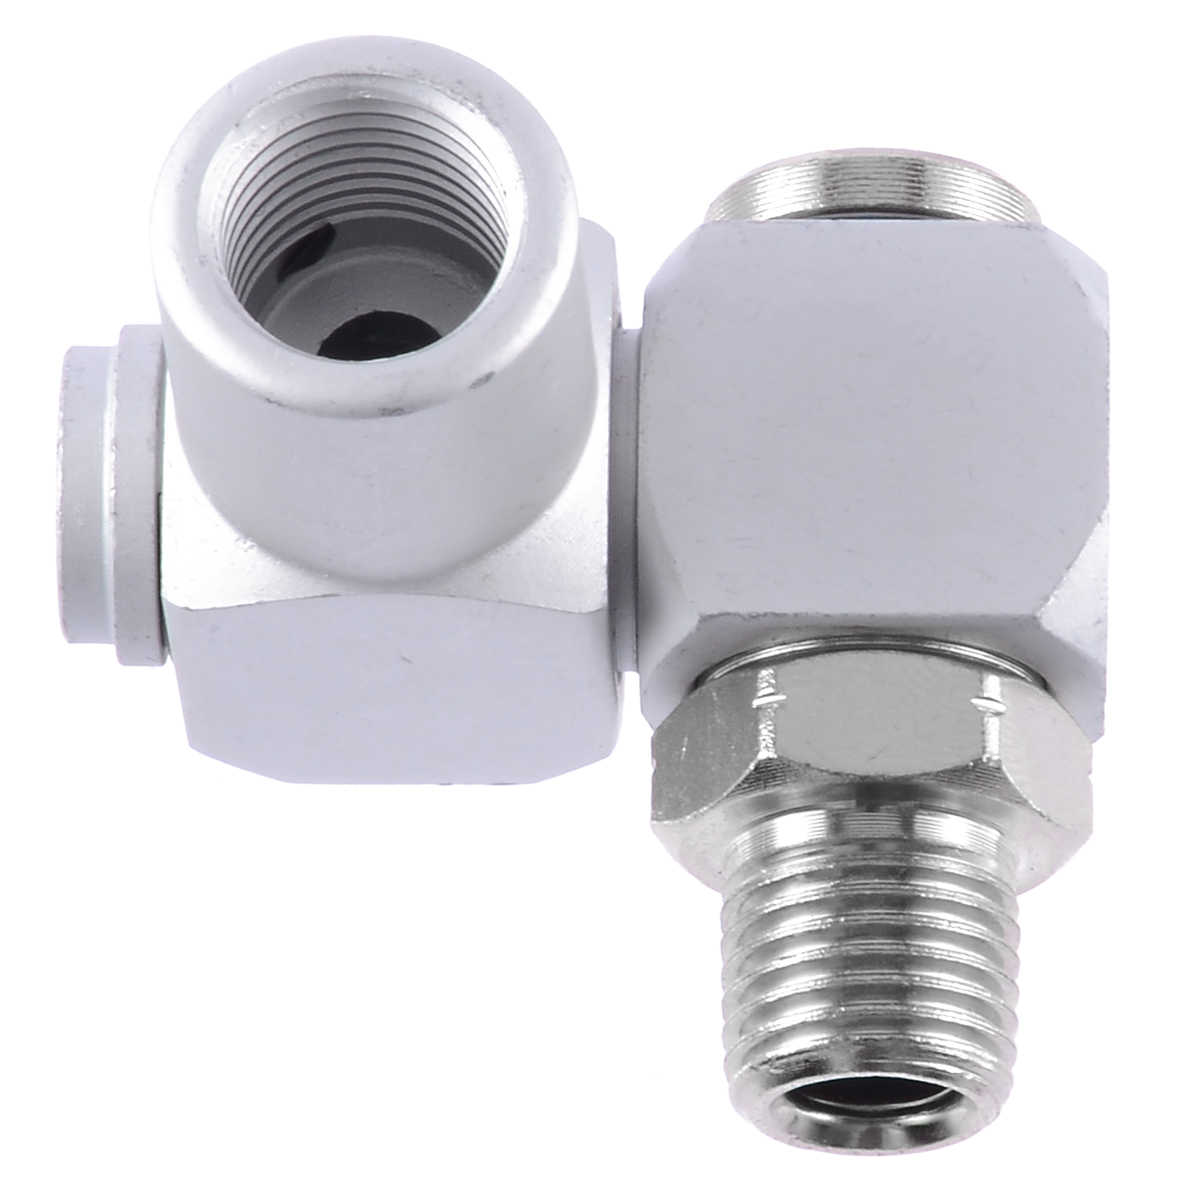 2Pcs Air Hose Connector 1//4in Male Thread 360/° Rotating Japanese Quick Connect Air Hose Adapter Connector Kits